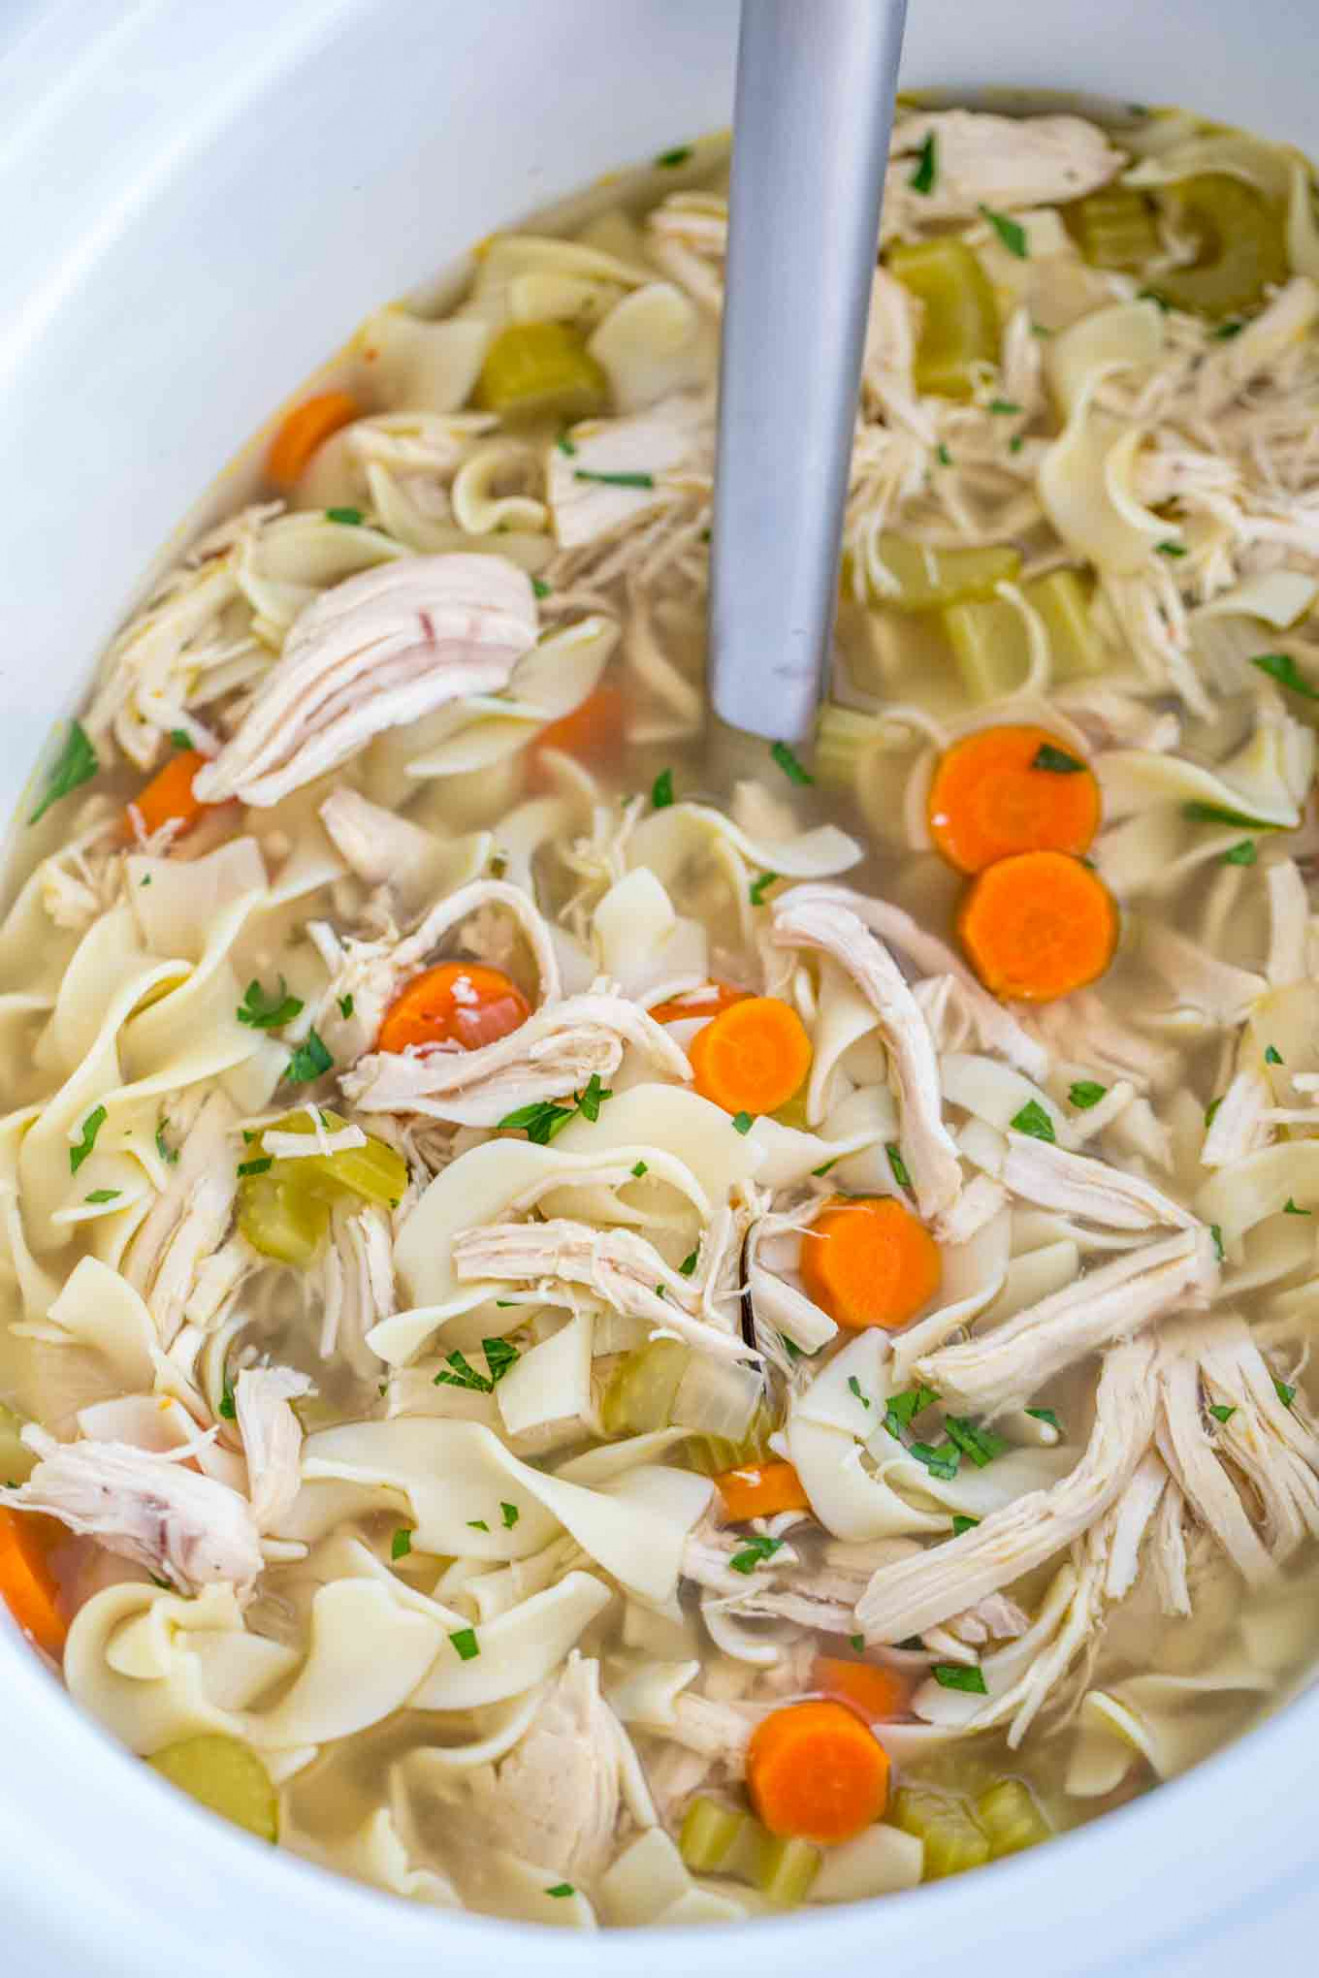 Crockpot Chicken Noodle Soup - recipes in crock pot with chicken